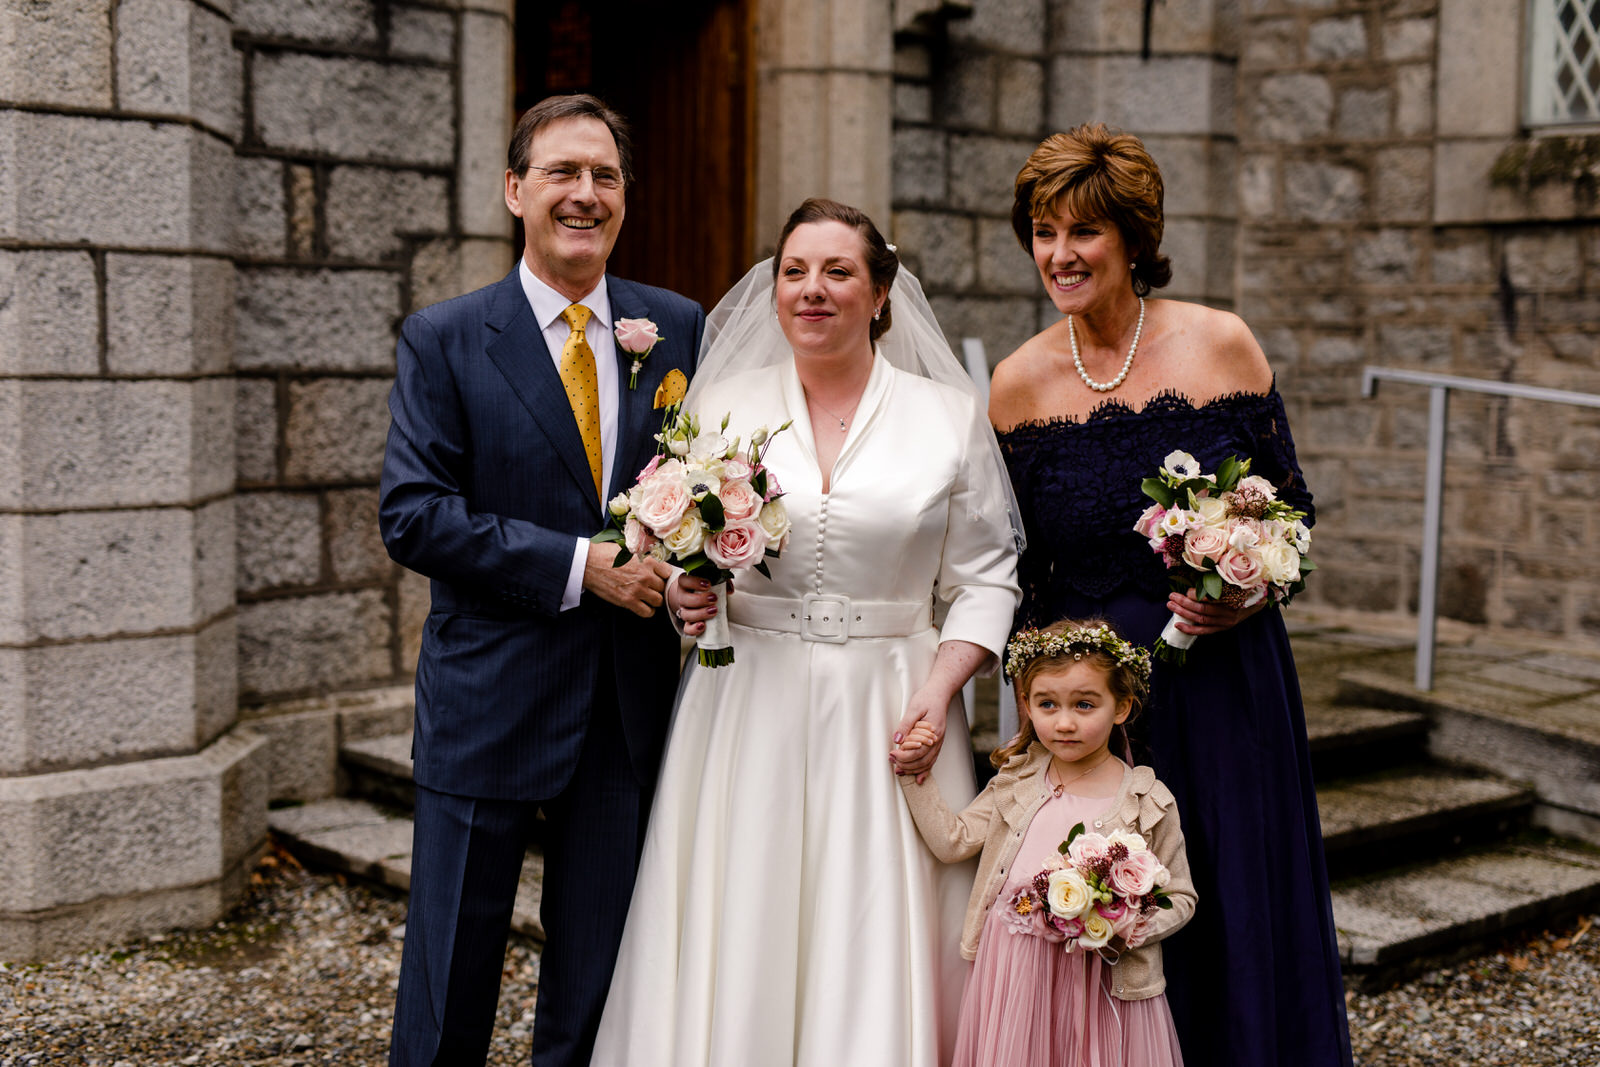 Roger-kenny-wedding-photographer-wicklow-glenview_028.jpg